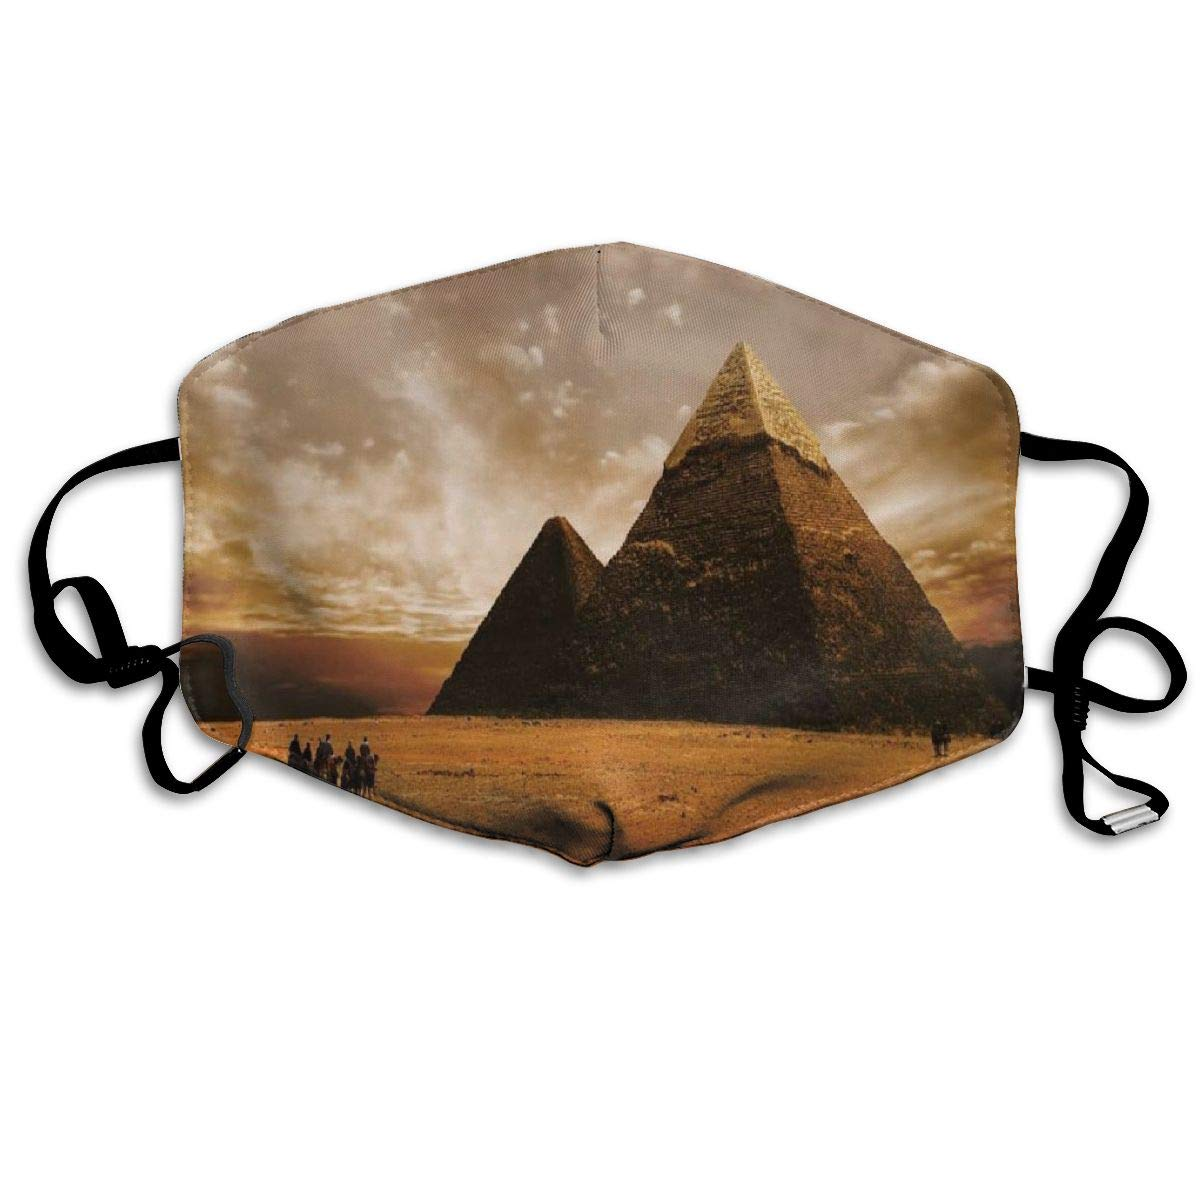 Dustproof   Washable Reusable Egyptian Pyramid Mouth Cover Mask   Protective   Warm Windproof Mask